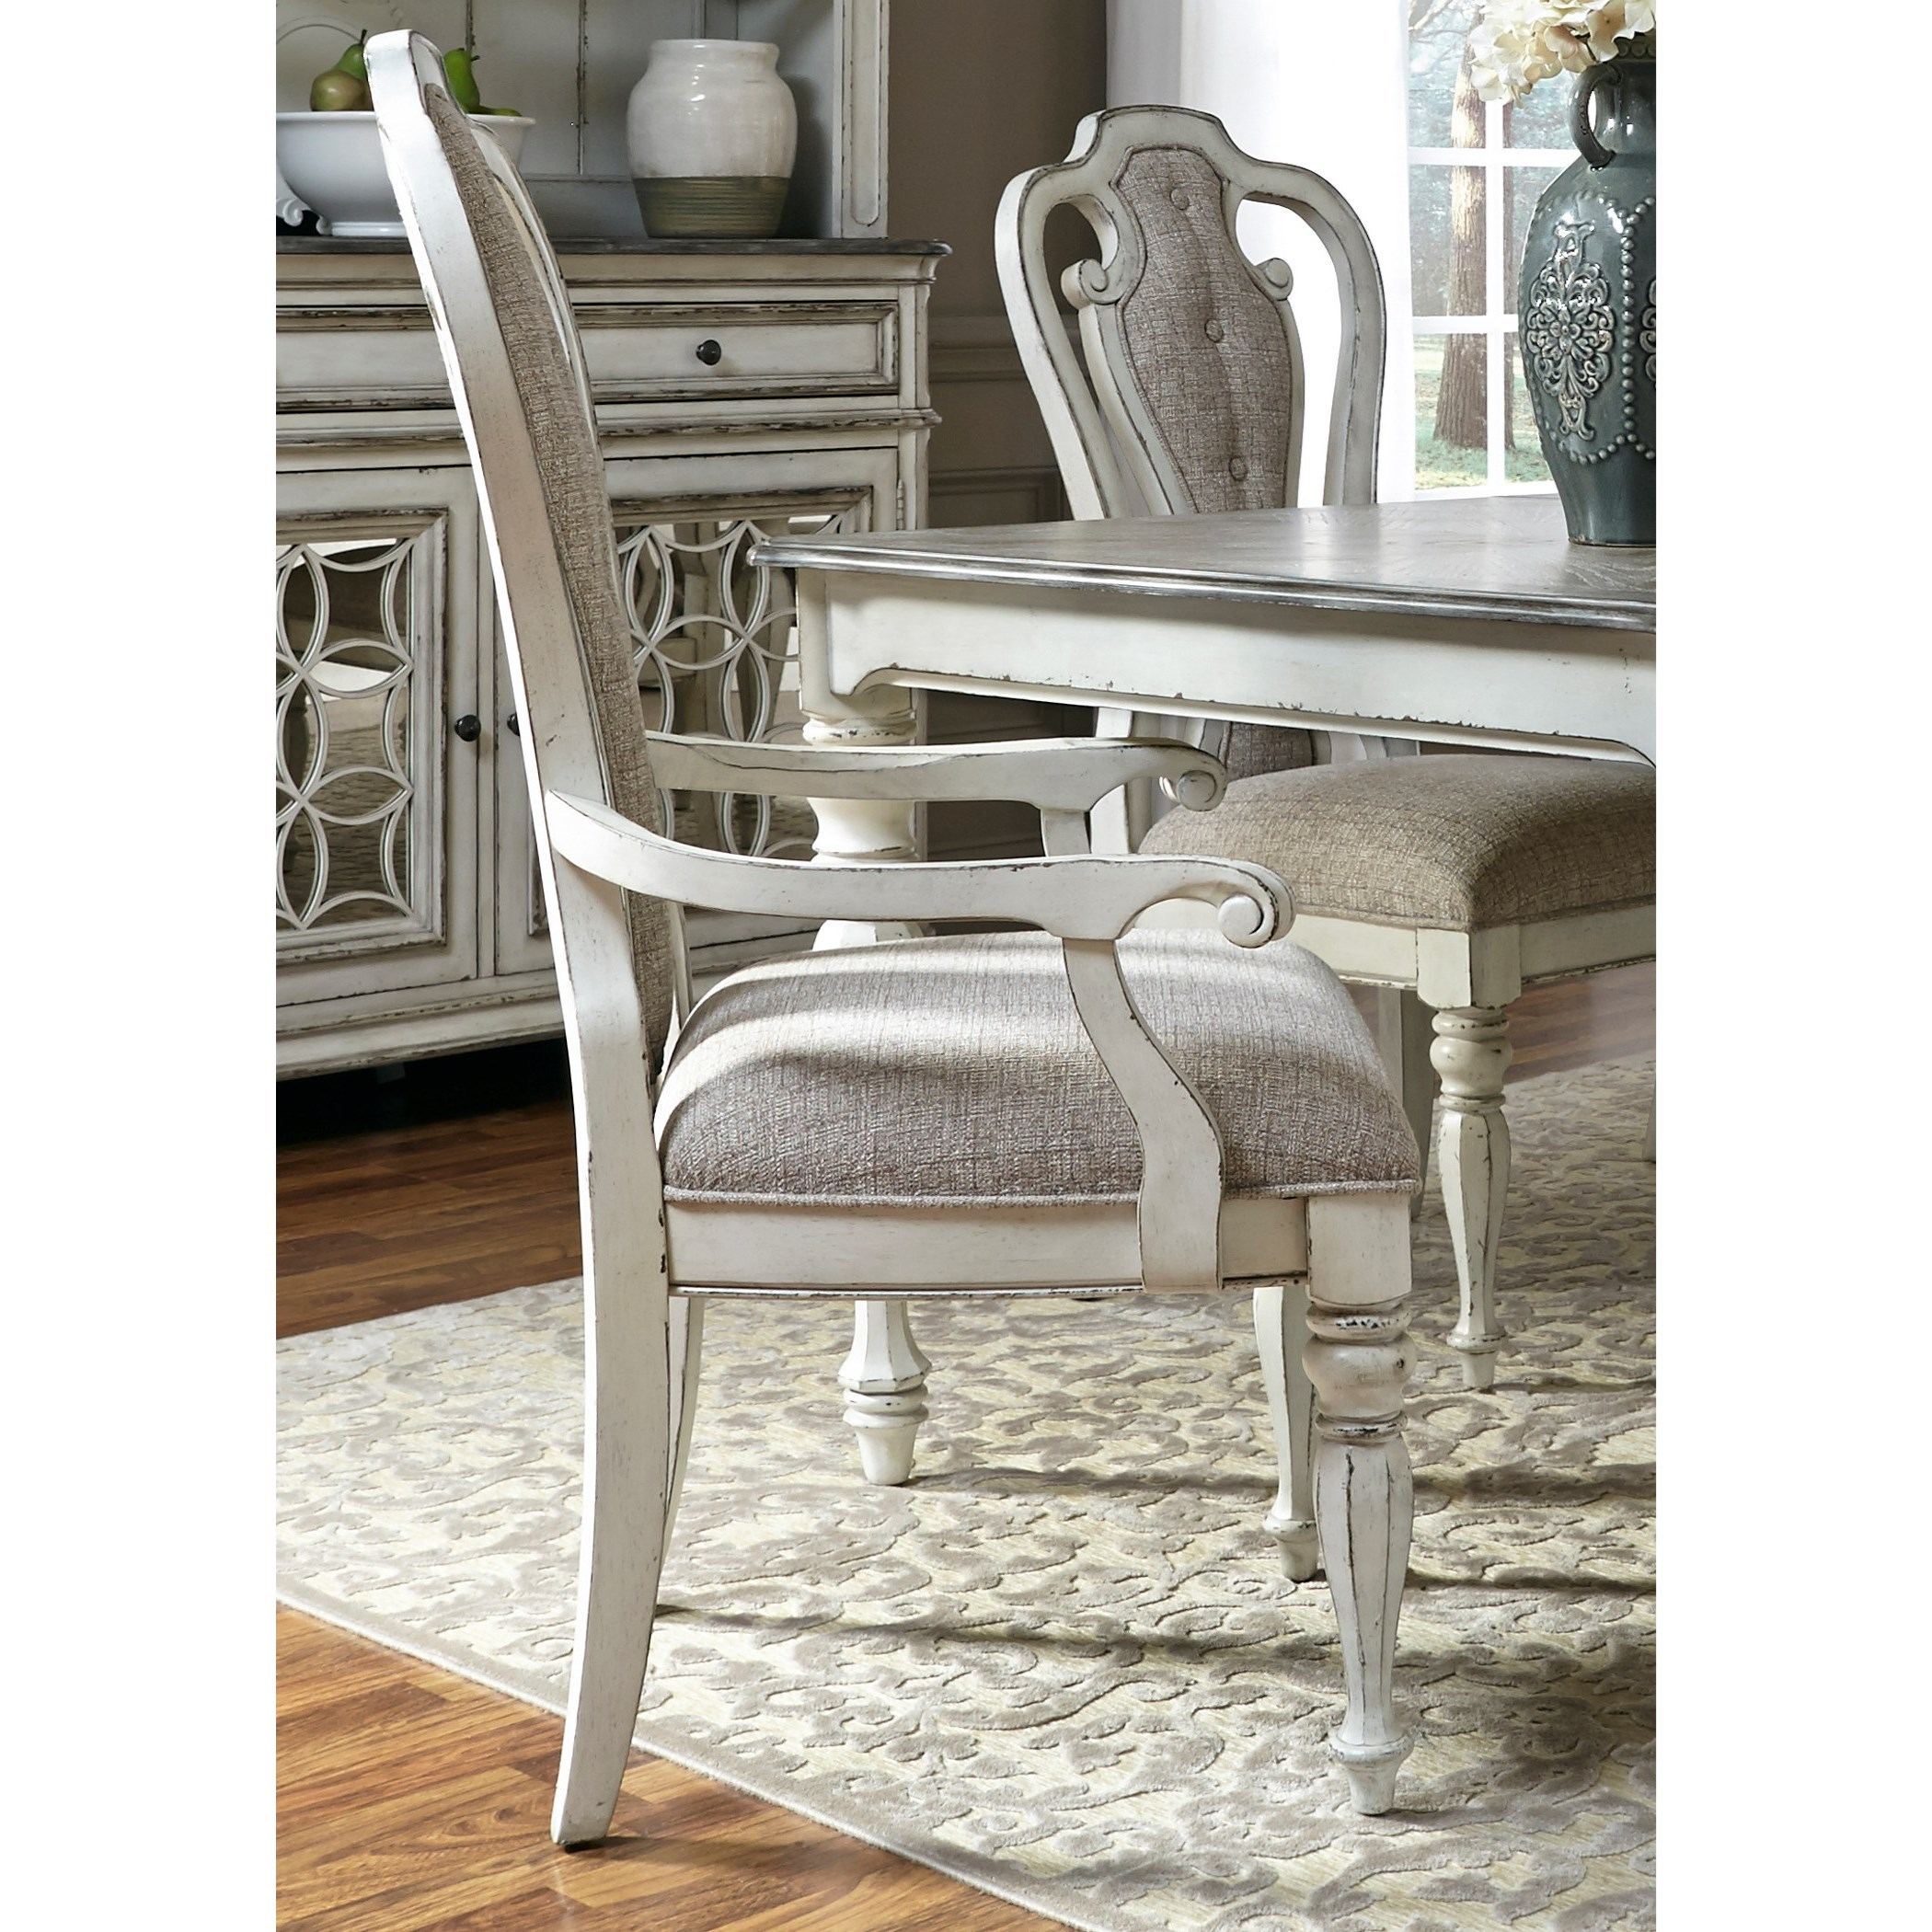 Liberty Furniture Magnolia Manor Dining Splat Back Arm Chair With  Upholstered Seat   Hudsonu0027s Furniture   Dining Arm Chairs